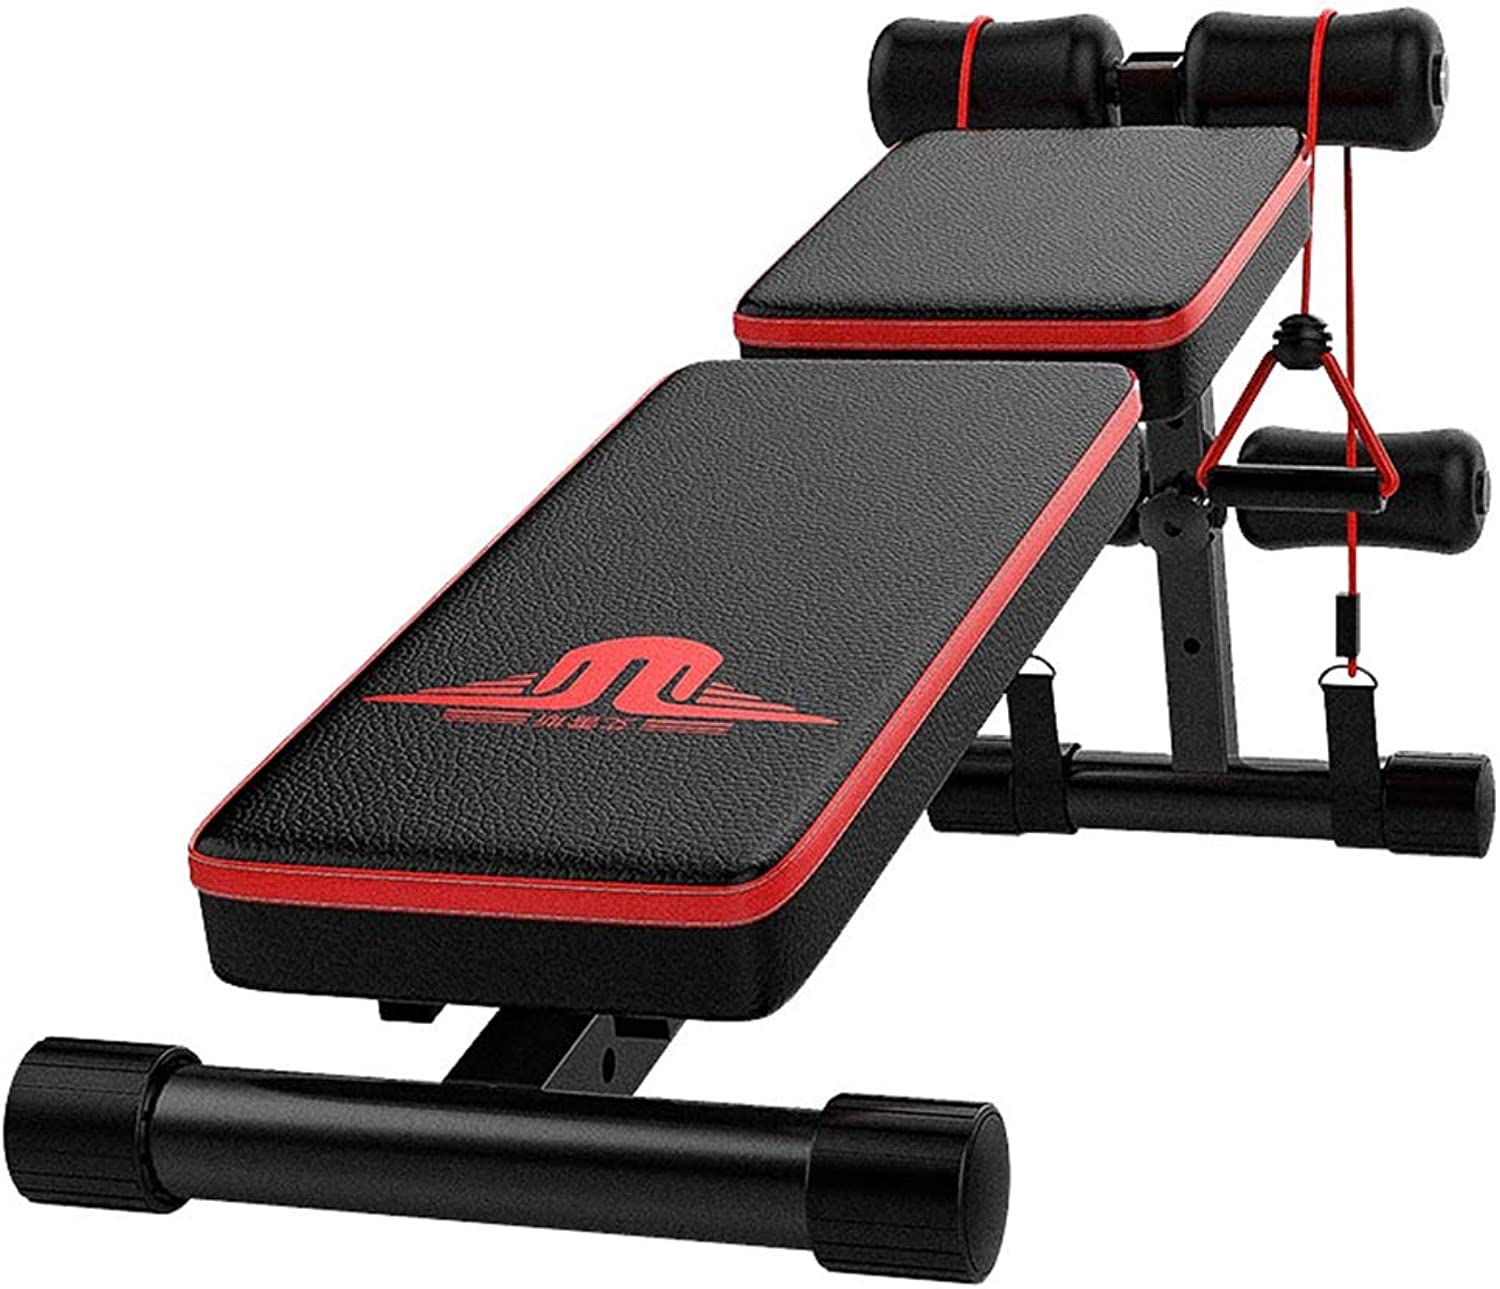 Sit Up BenchExercise Bench Foldable Multi-Function Dumbbell Bench 3 Heights Adjustment Load Capacity 385 Lbs Black + Red